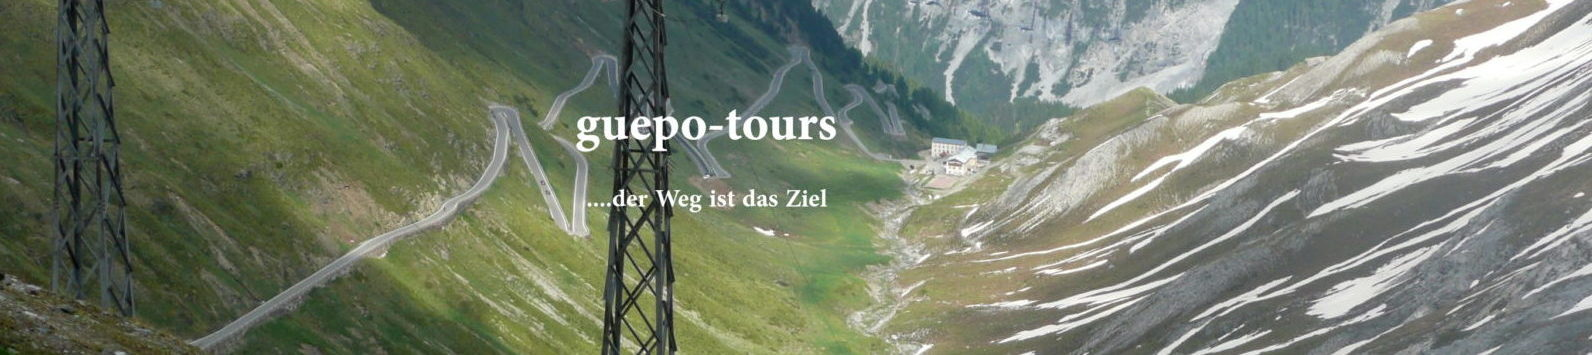 guepo-tours